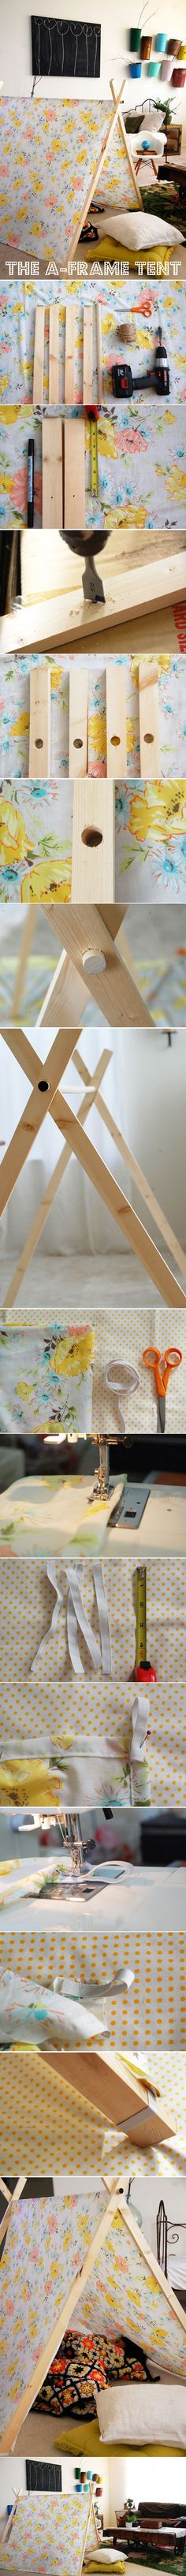 DIY Tutorial: A-Frame Tent. Maybe this will go better than my tipi attempt. Diy Projects To Try, Craft Projects, Sewing Projects, Diy For Kids, Crafts For Kids, Diy Crafts, Diy Zelt, A Frame Tent, Deco Kids